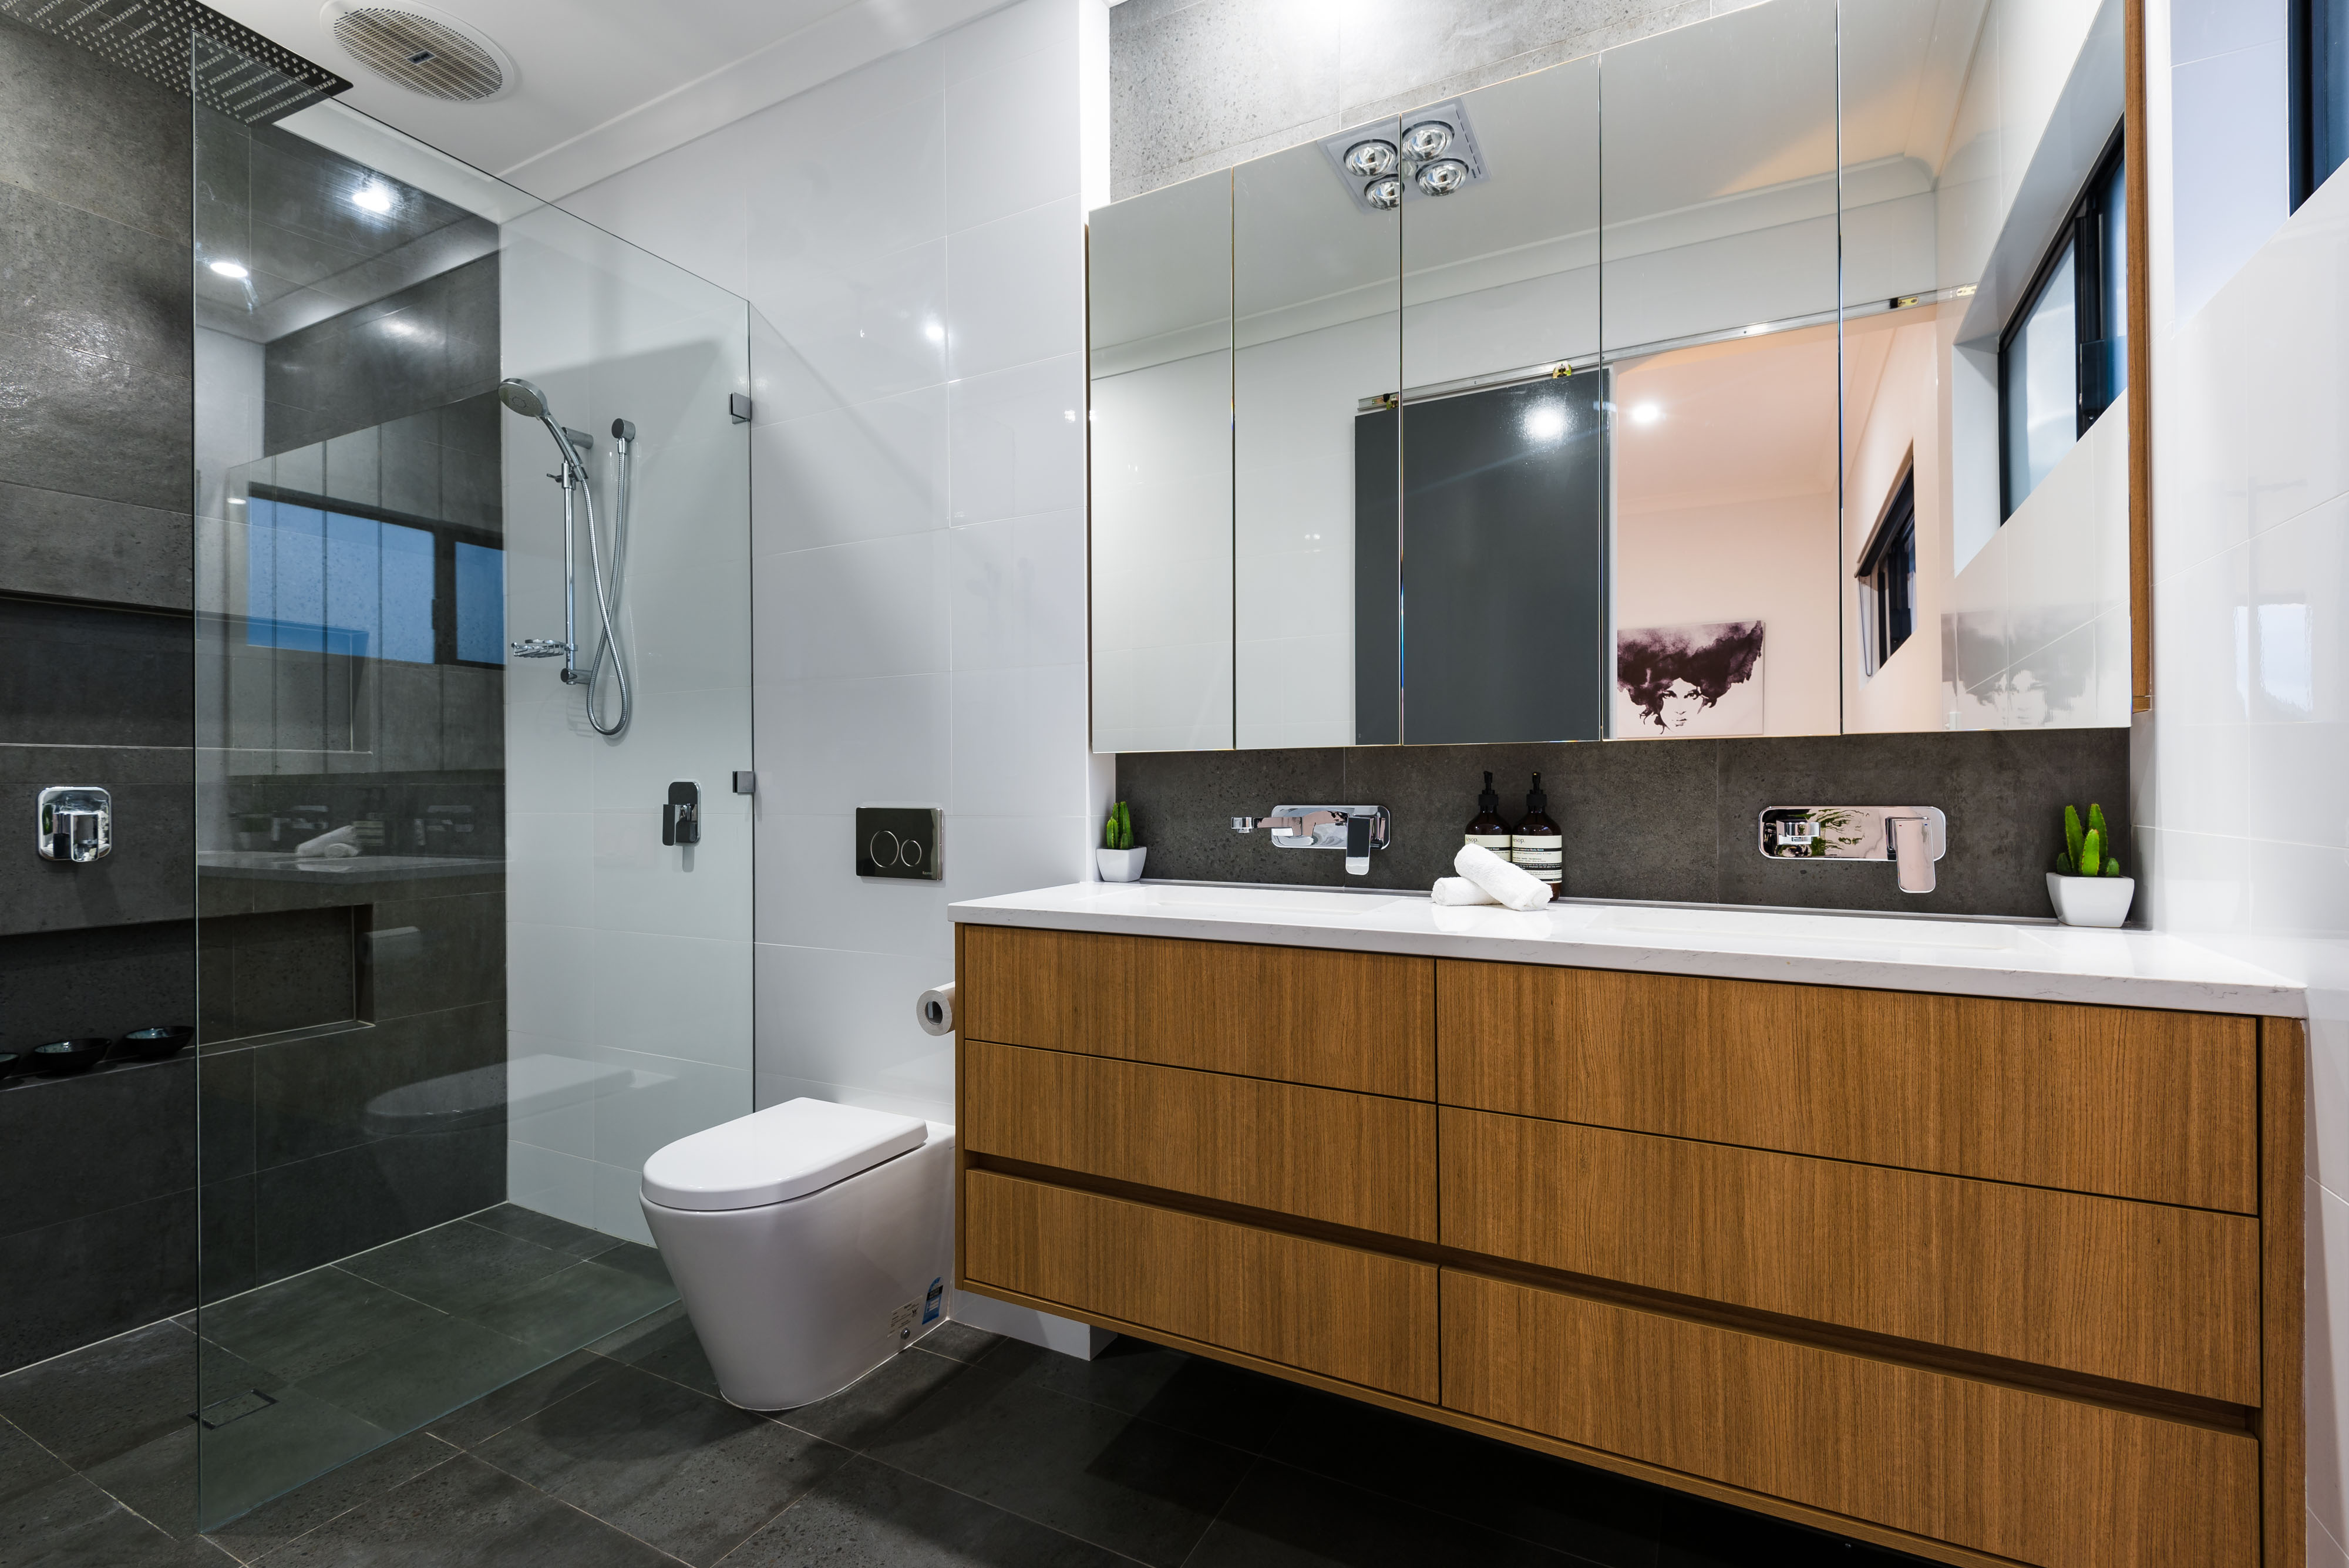 picture of a bathroom with transparent shower screens and mirrors